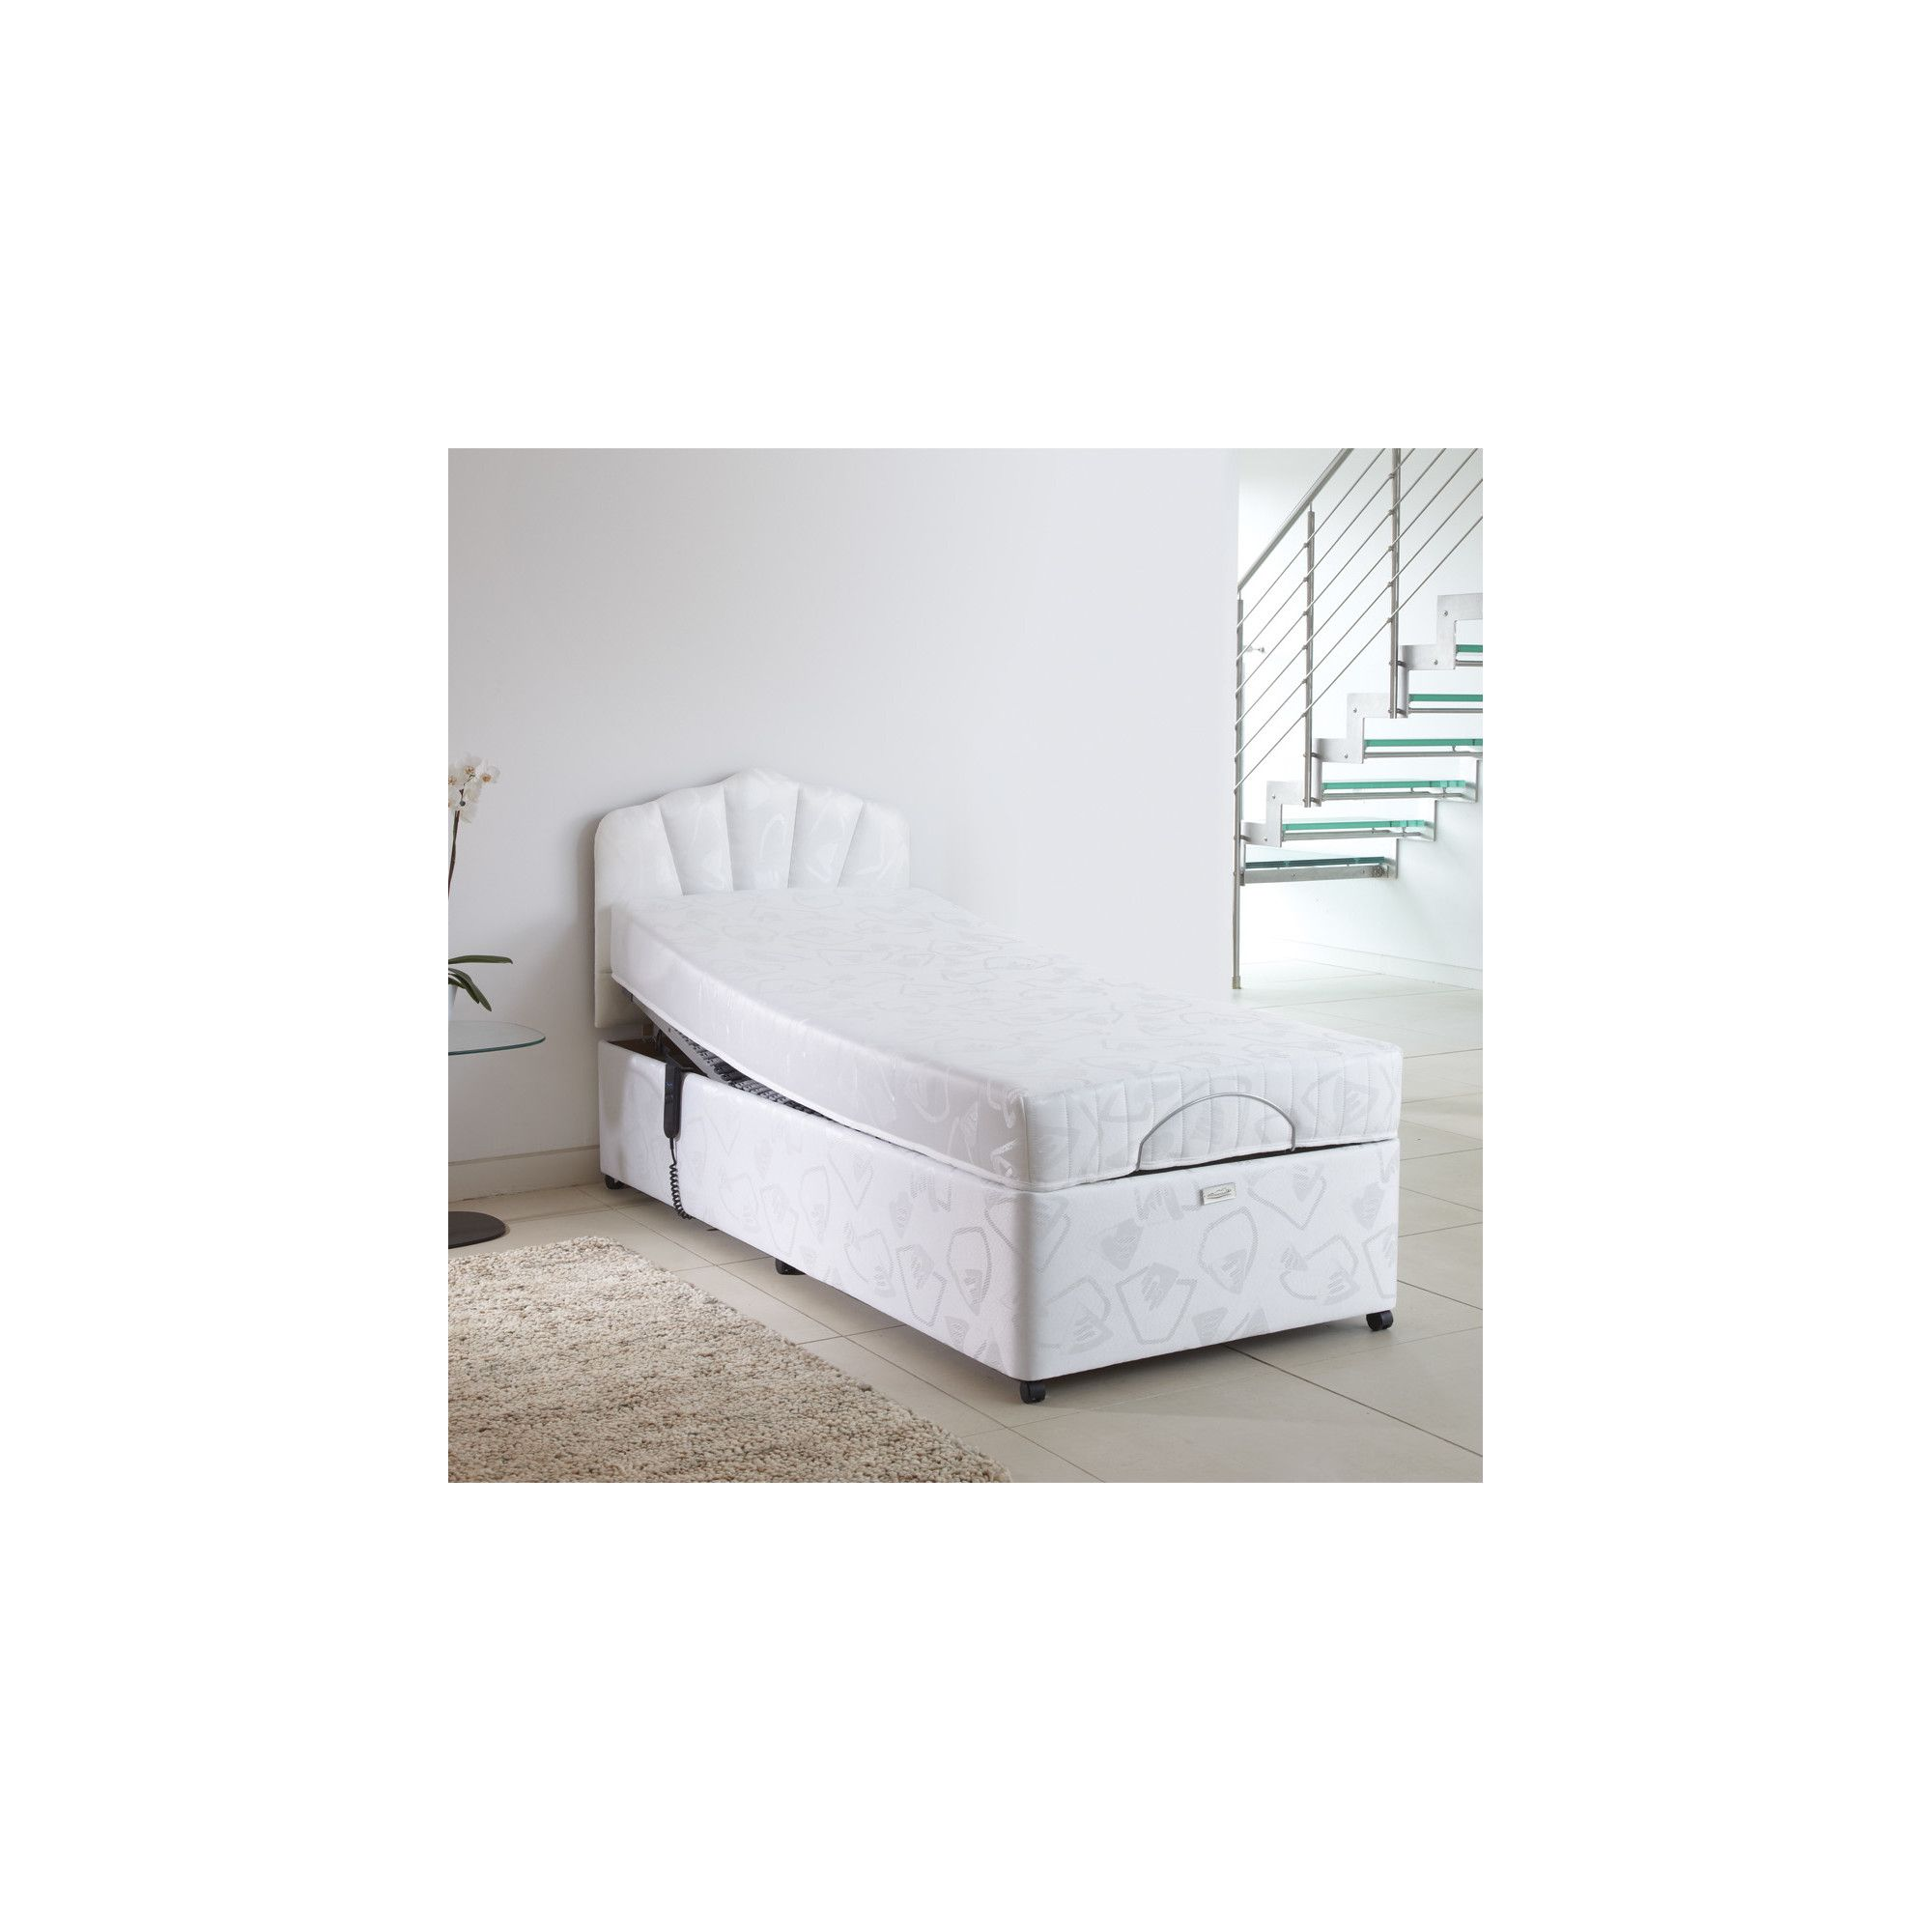 Bodyease Adjustable Deep Base Set with Electro Neptune Mattress - Double - 4 Drawers at Tesco Direct